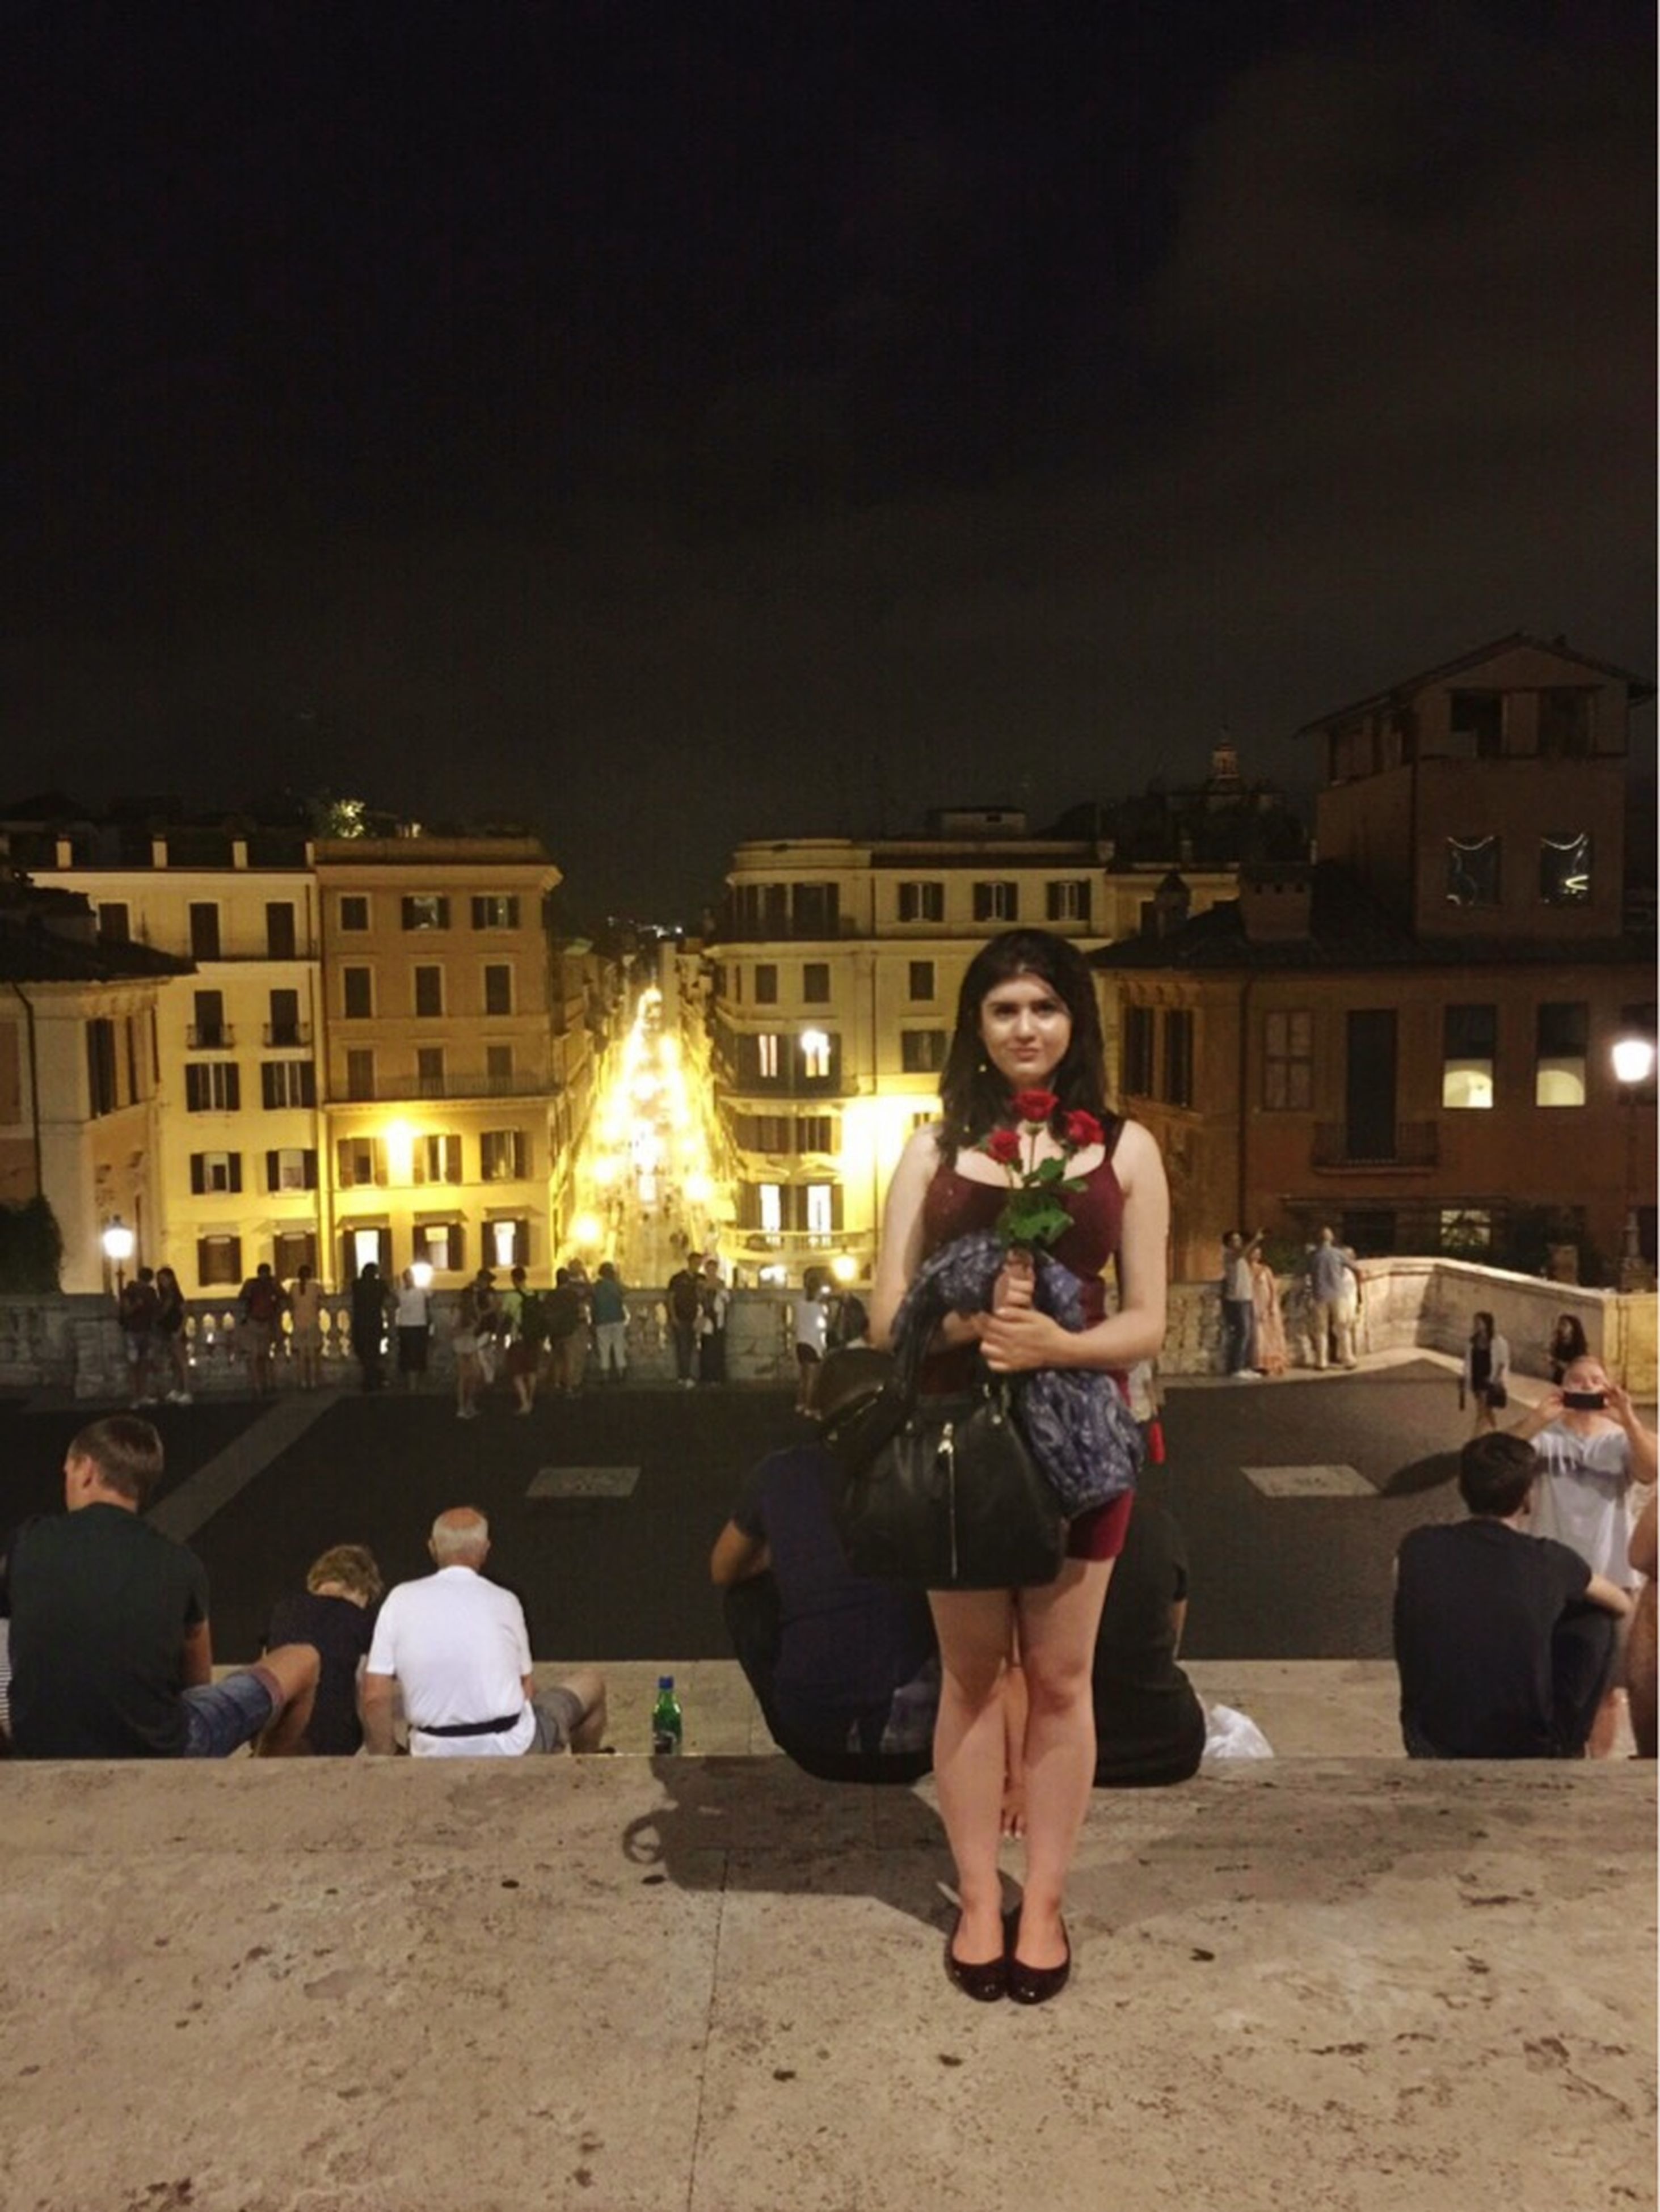 lifestyles, leisure activity, illuminated, night, building exterior, casual clothing, young adult, architecture, built structure, looking at camera, portrait, togetherness, young women, person, happiness, large group of people, front view, sitting, standing